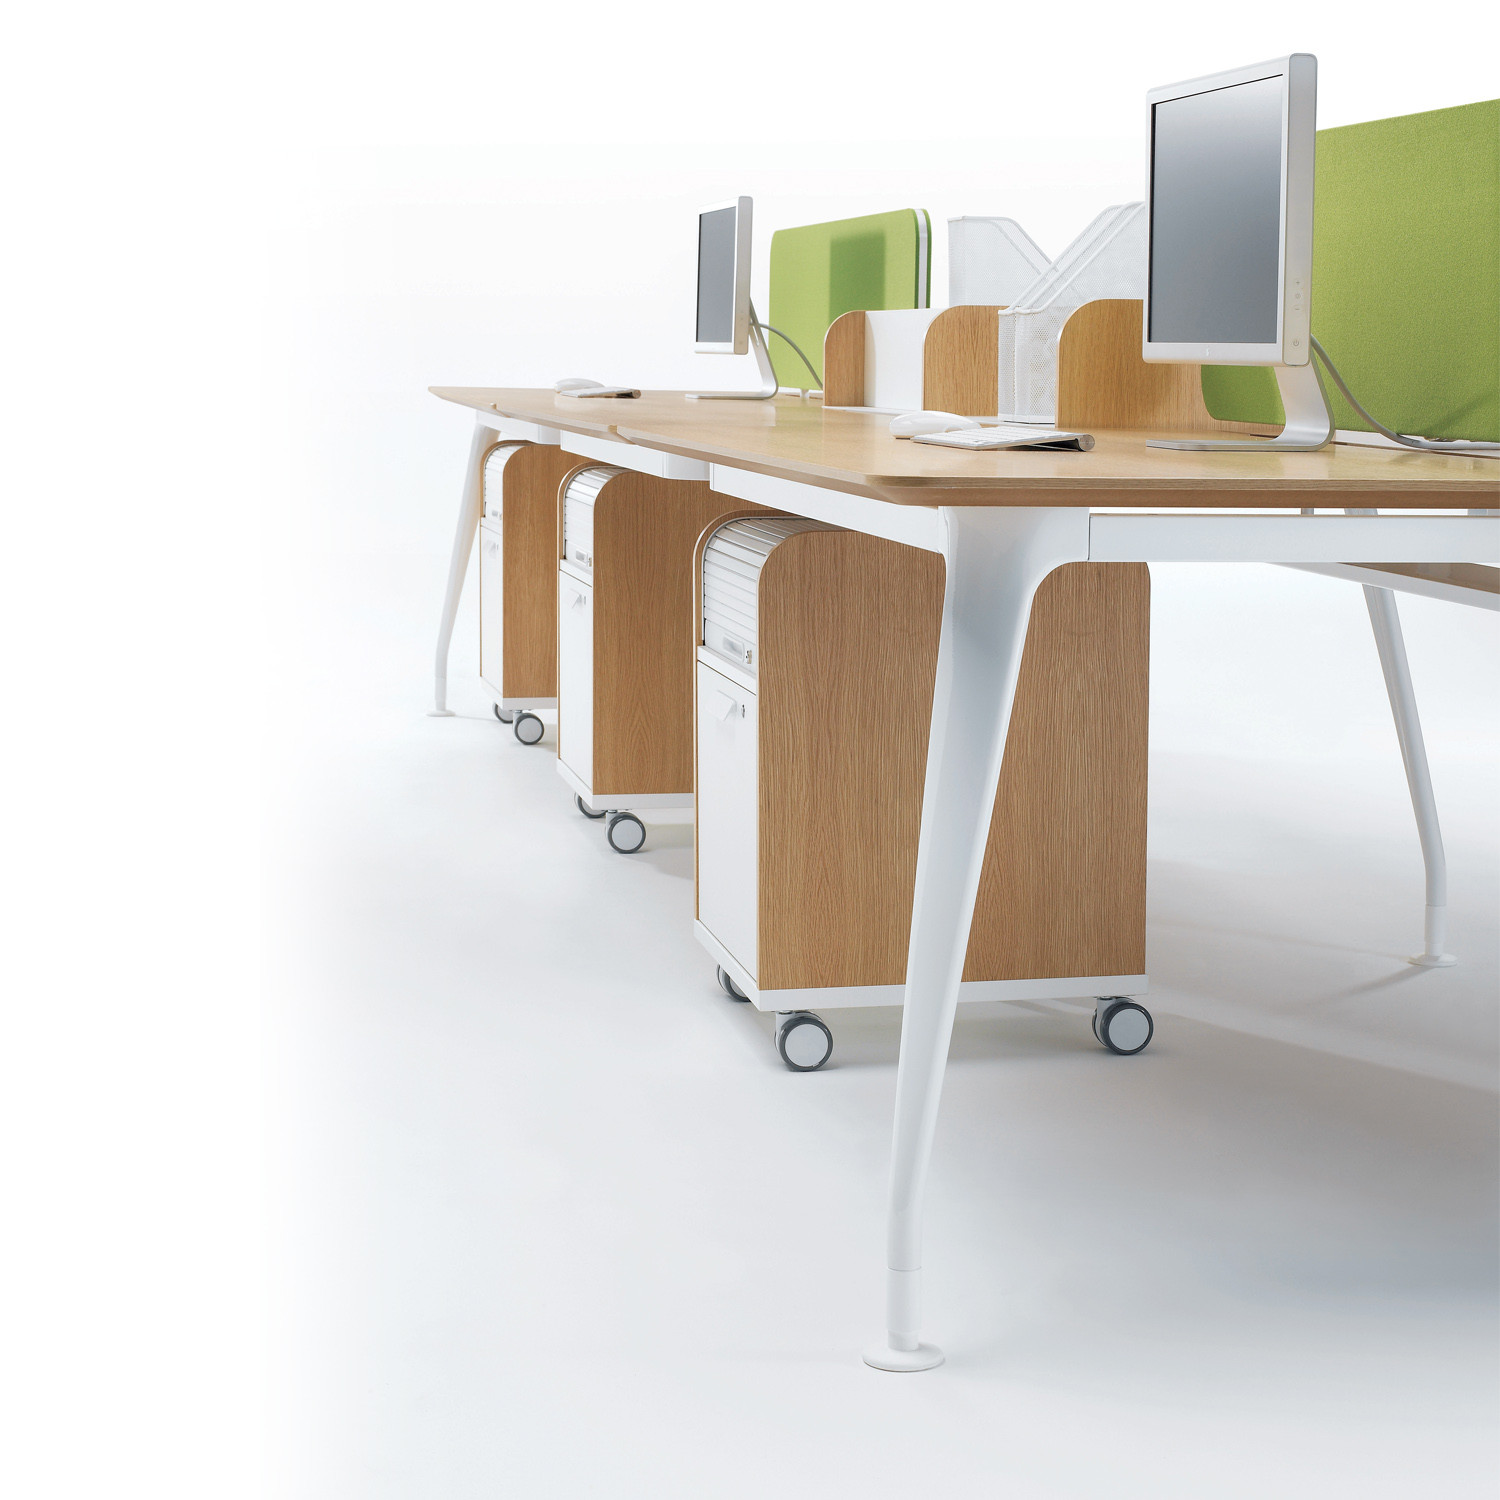 DNA Office Bench Desk System